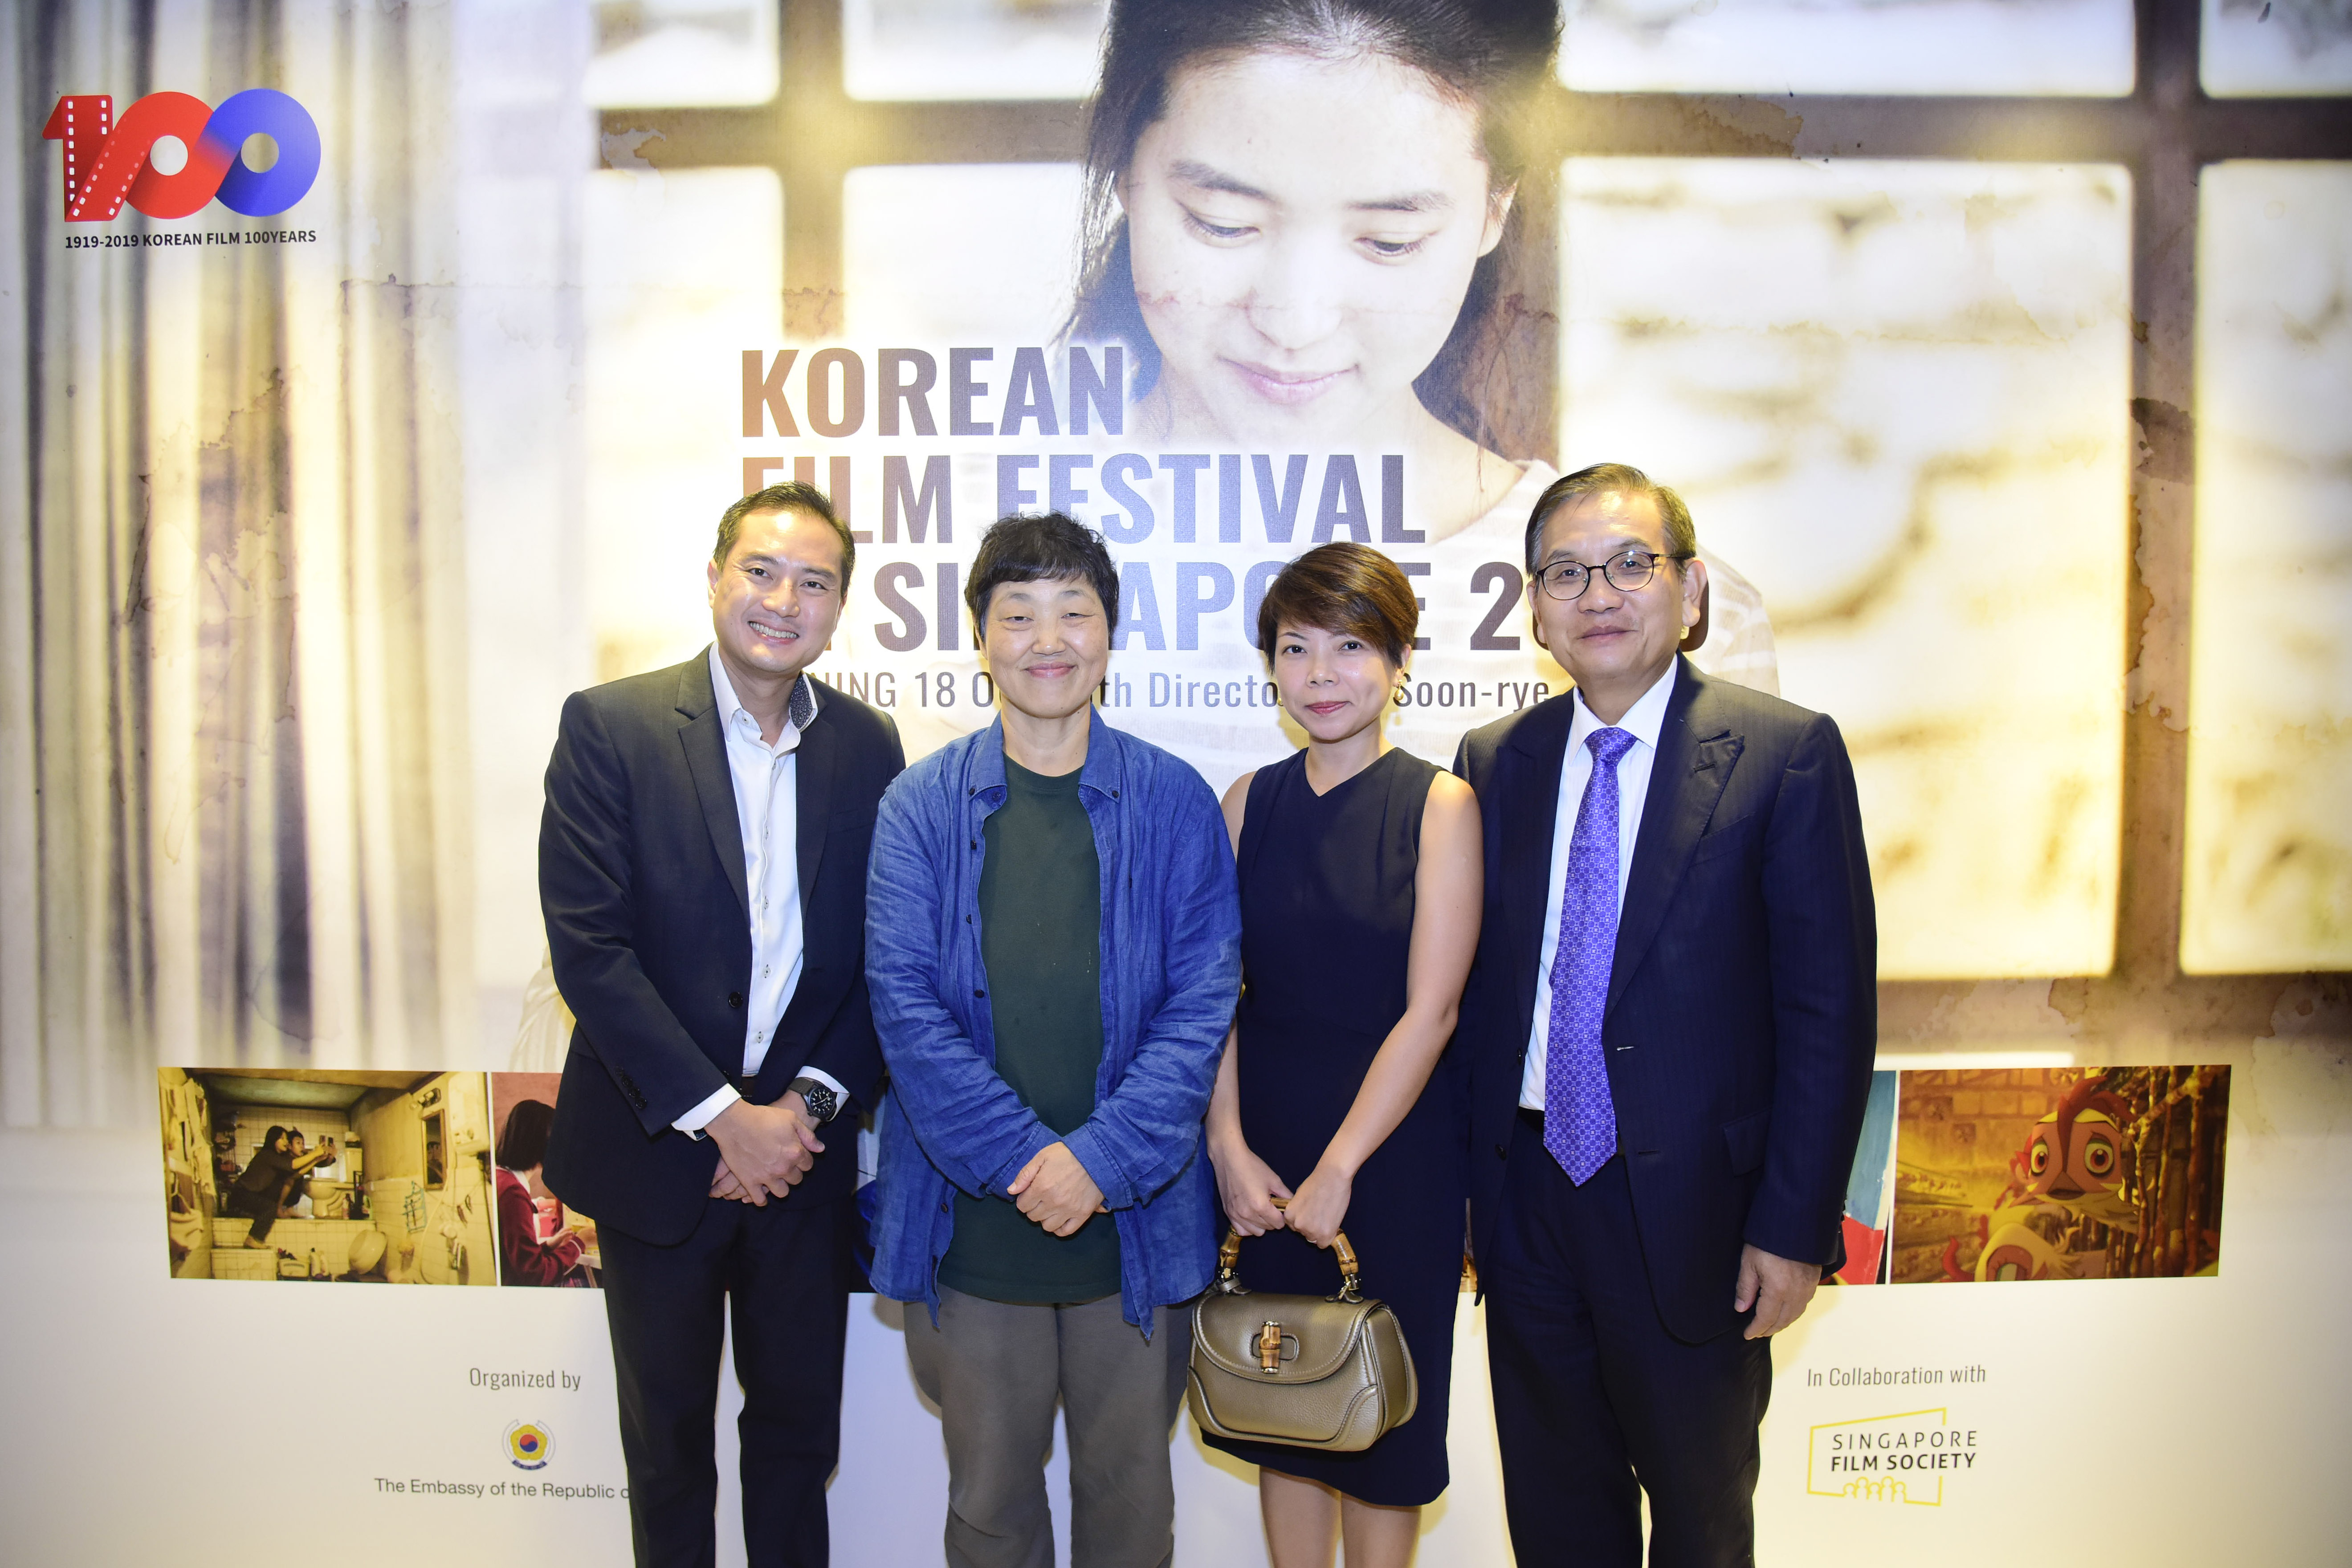 The opening night of the Korea Film Festival 2019 concluded with great success